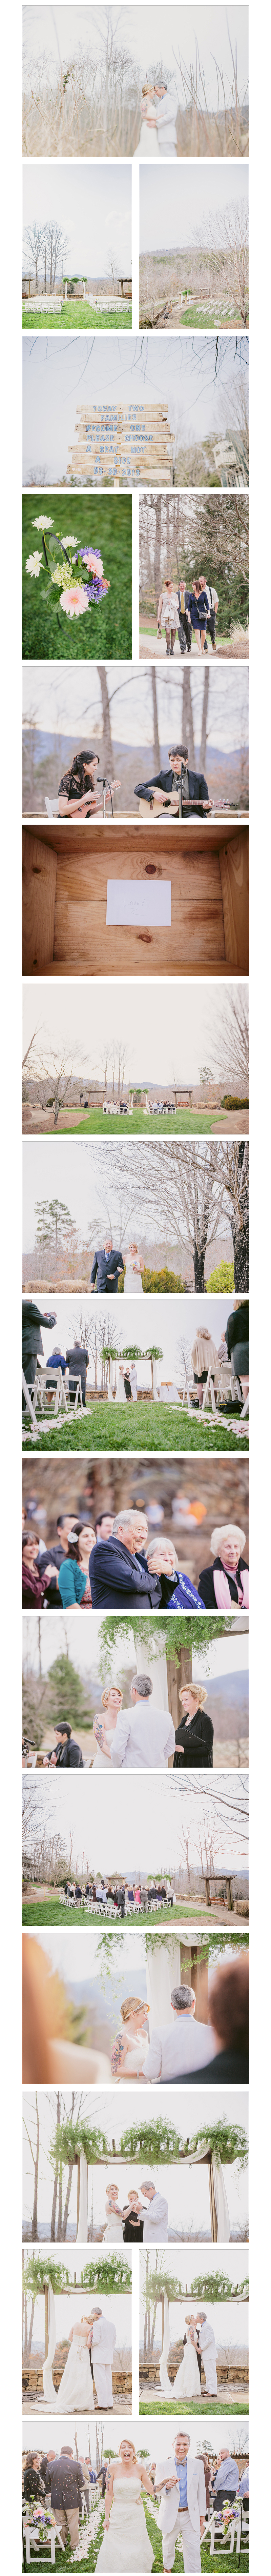 cute north georgia wedding 2.jpg